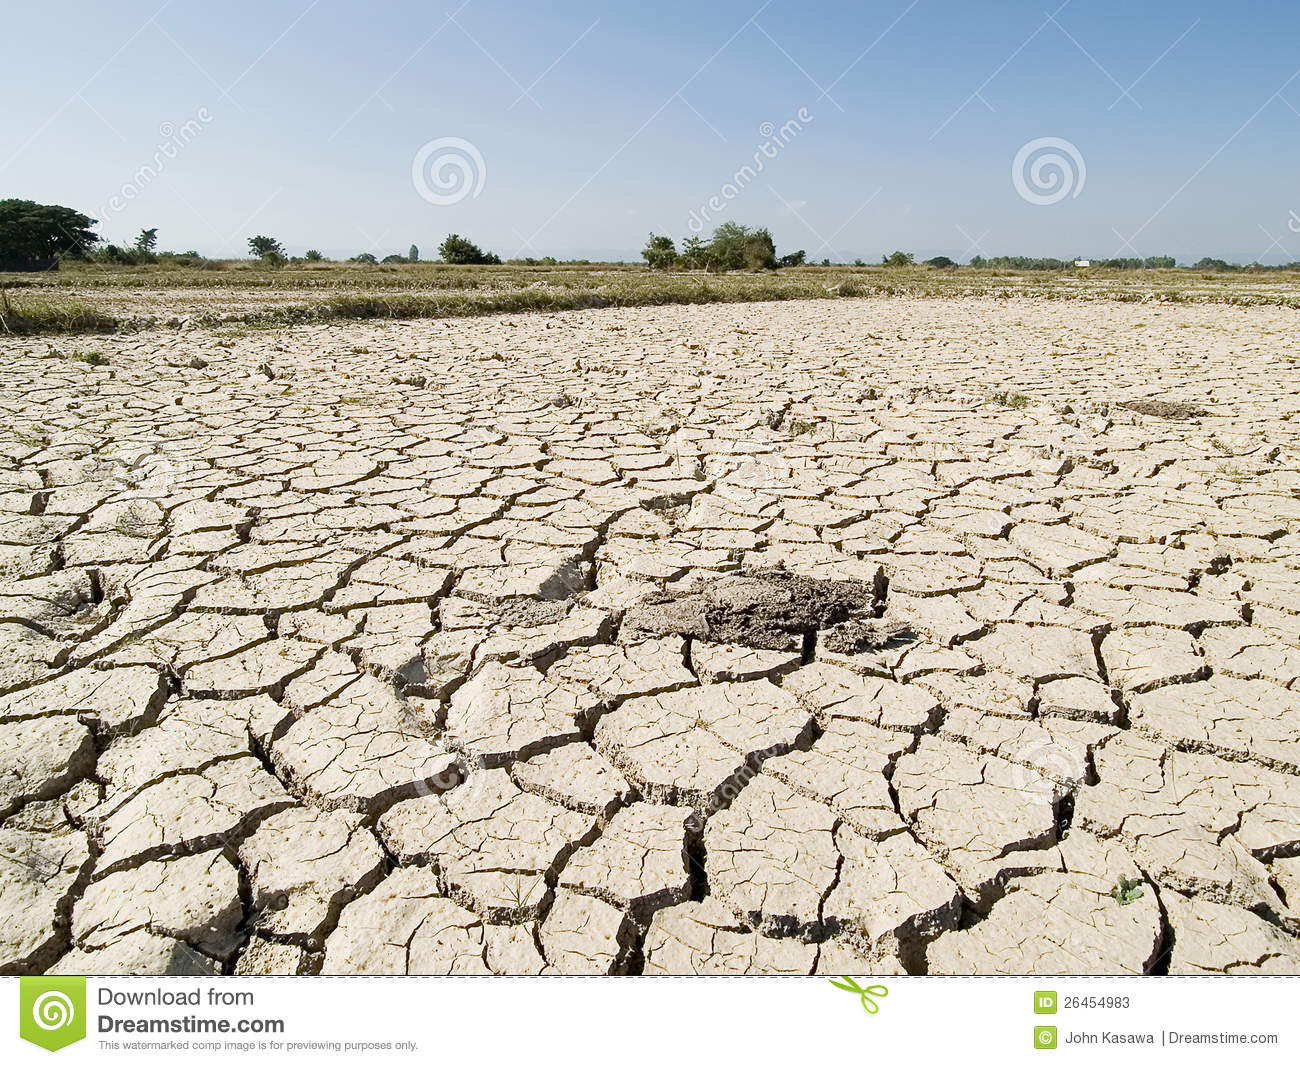 Dried earth because of no water